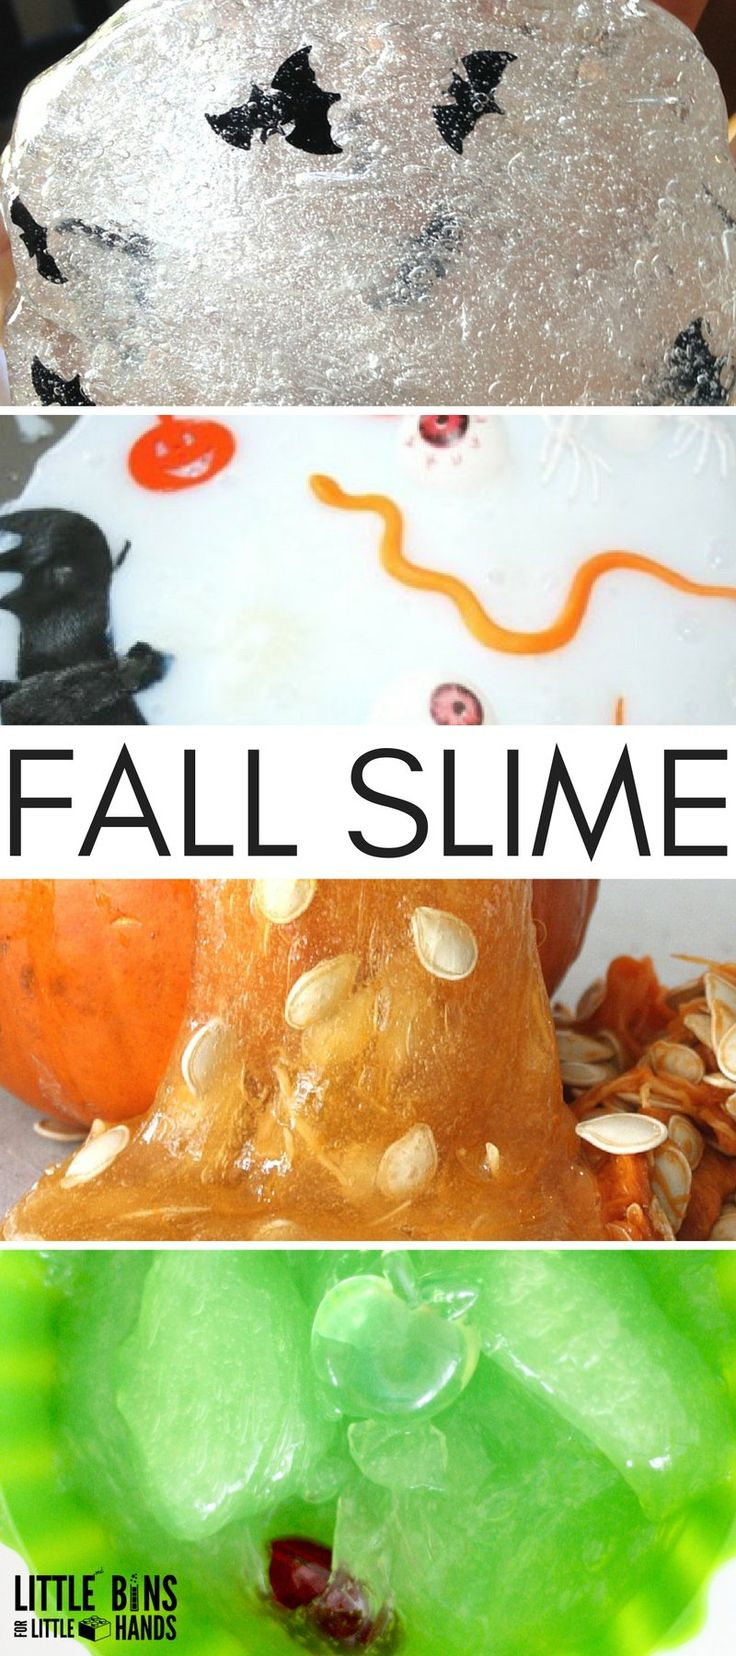 120 best slime worms and polymers images on pinterest sensory fall slime ideas and recipes for kid to make slime with homemade slime recipe ccuart Gallery